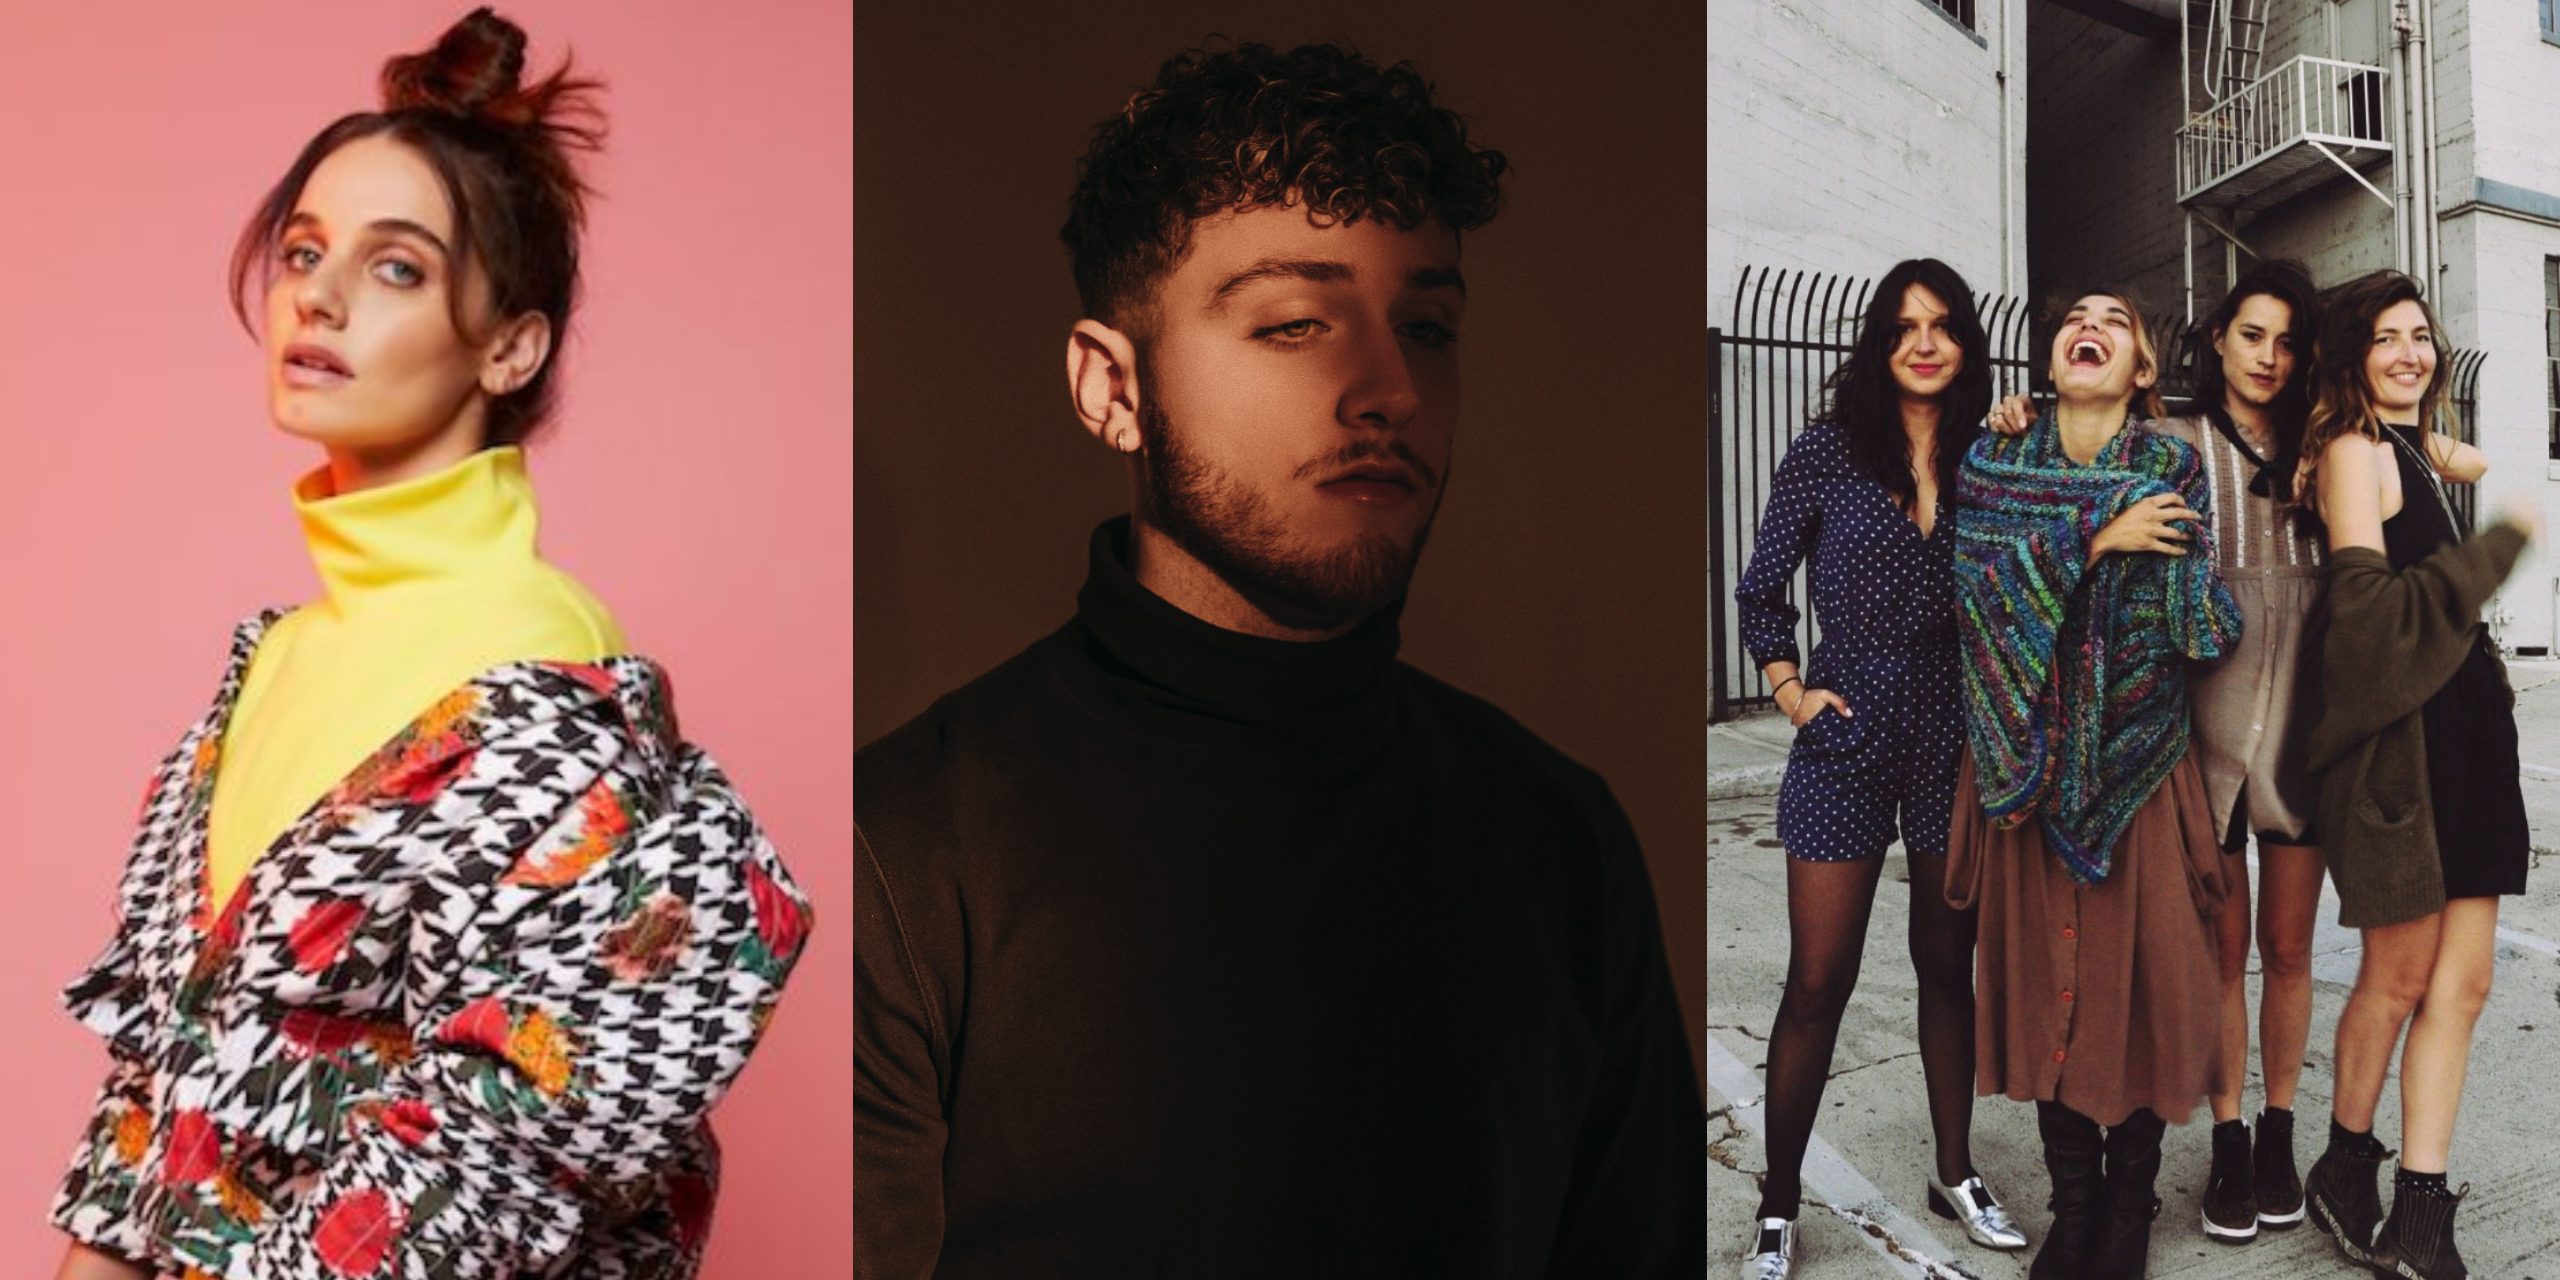 BREAKING: We The Fest announces Phase 3 line-up – Bazzi, Nina Las Vegas, Warpaint and more